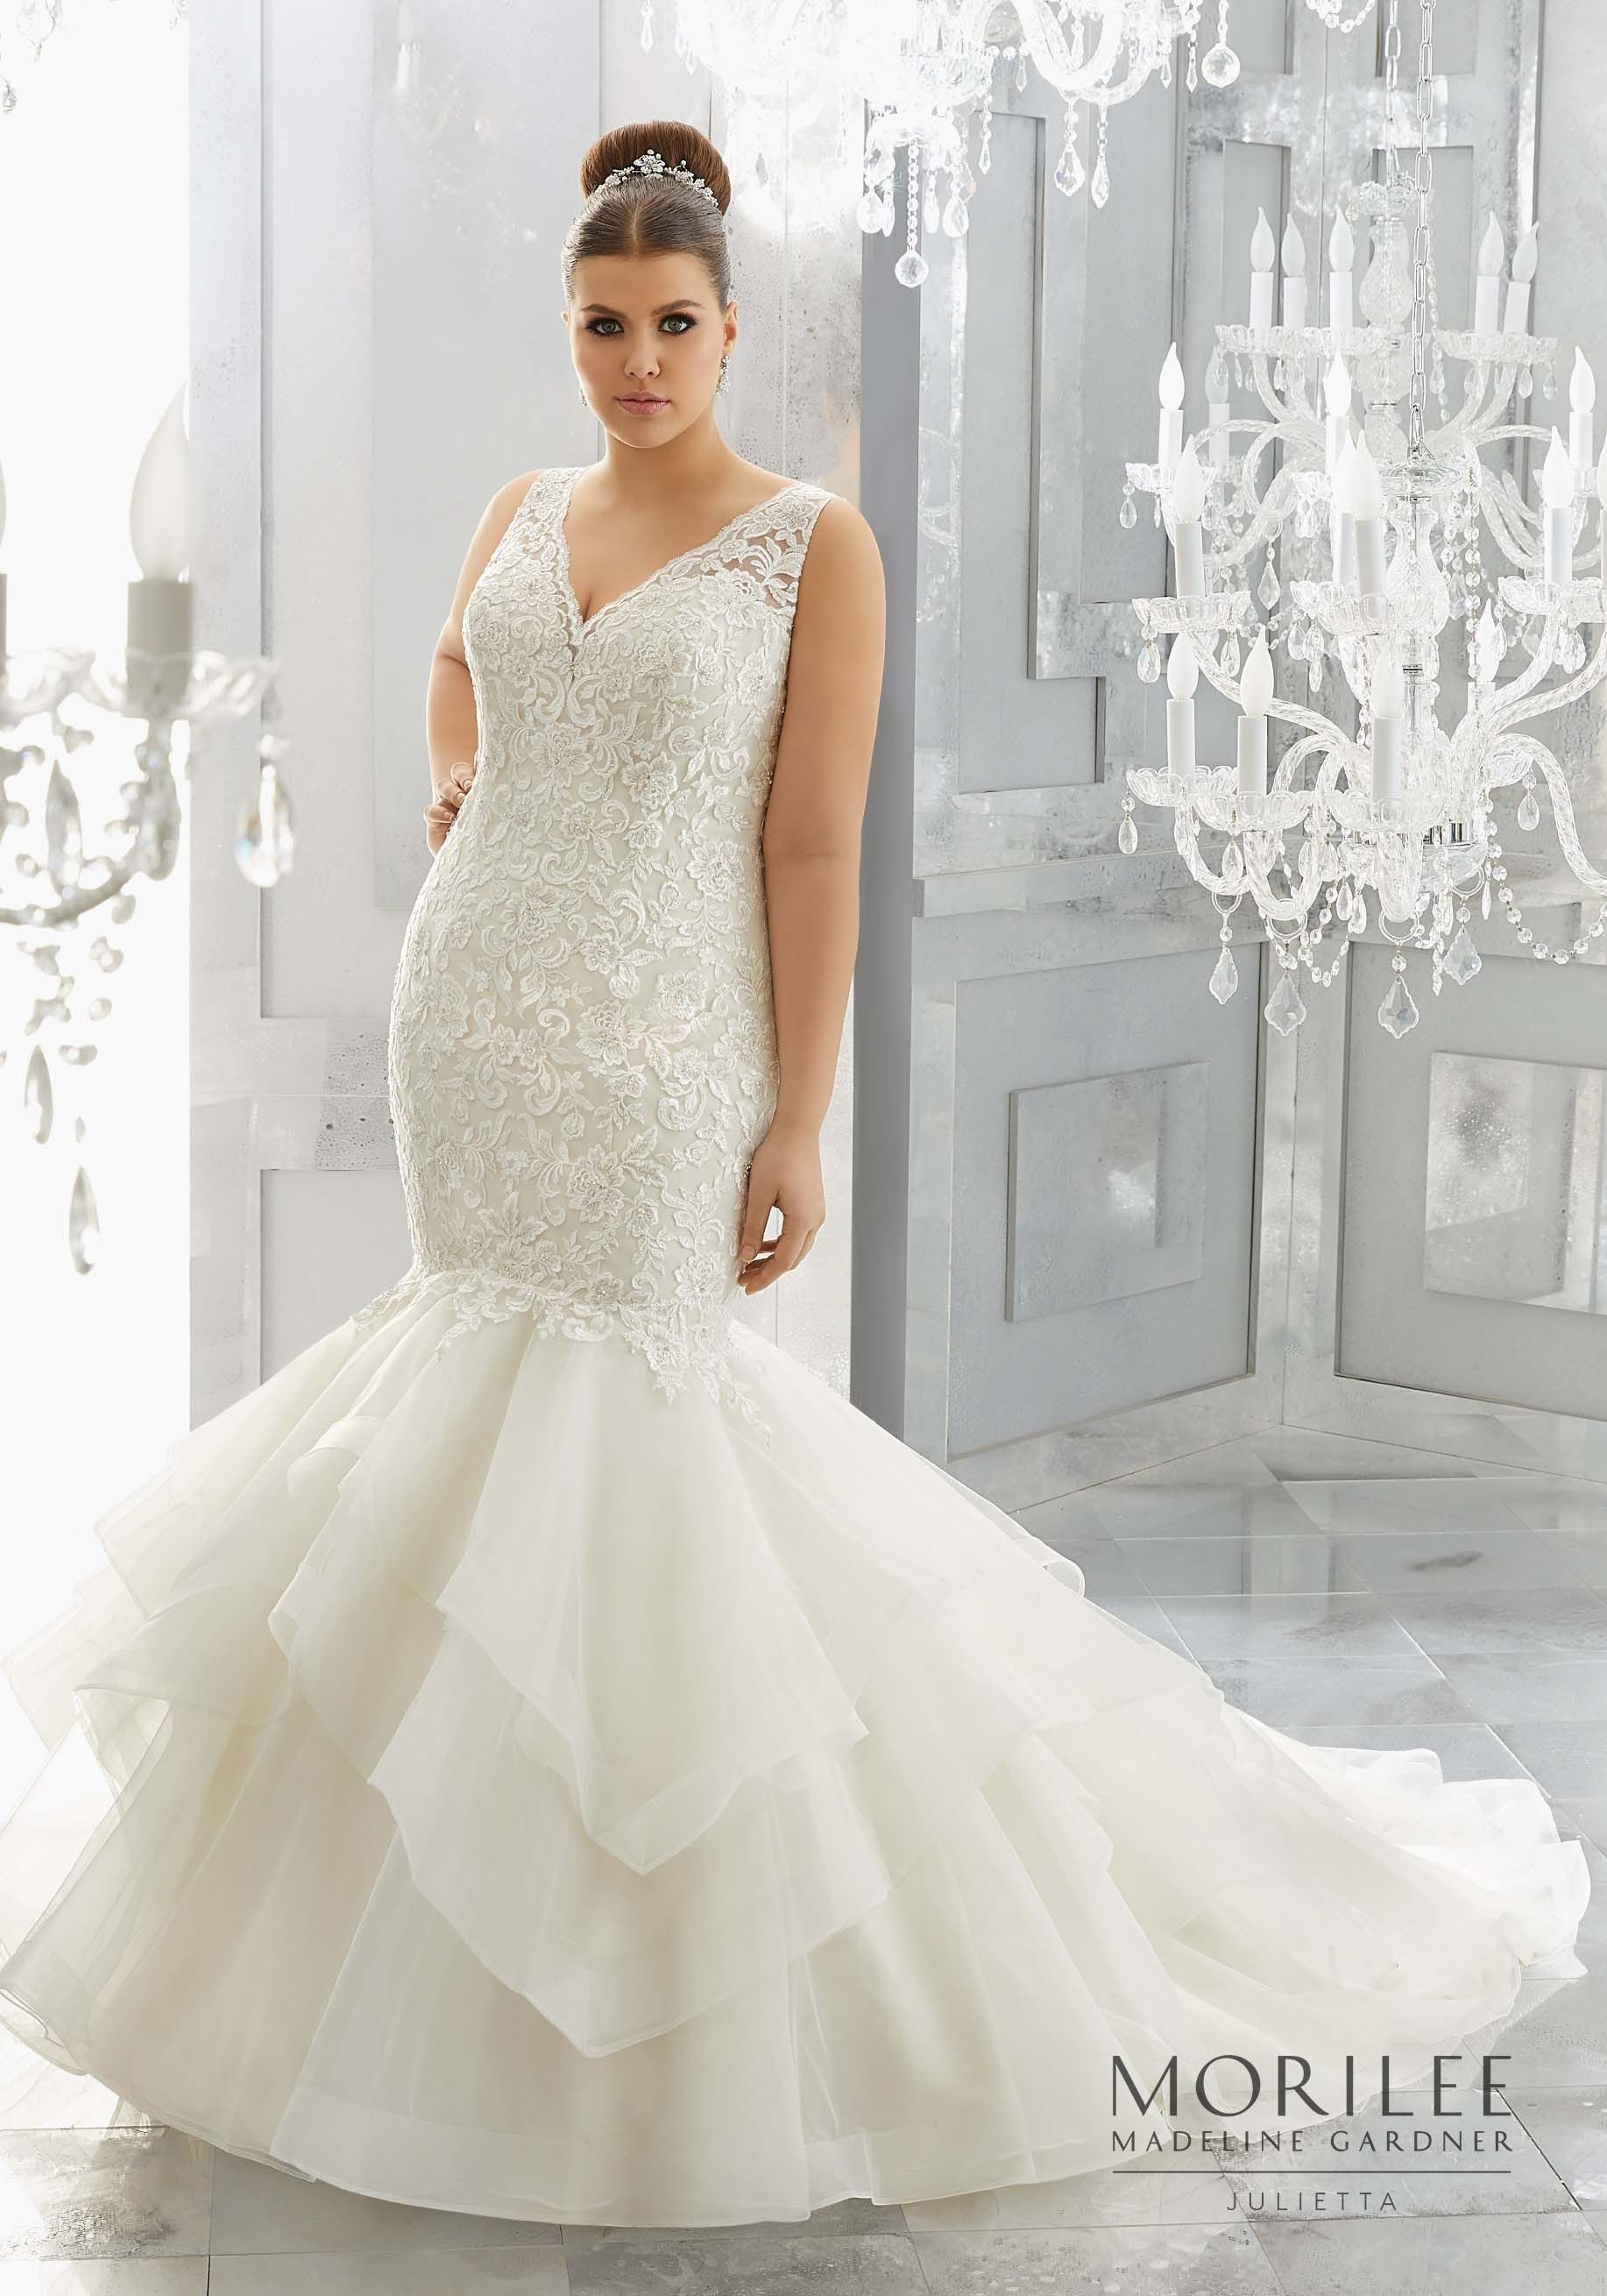 Mori lee madeline gardner wedding dress  Morilee  Madeline Gardner Miliana Plus Size Wedding Dress Shown